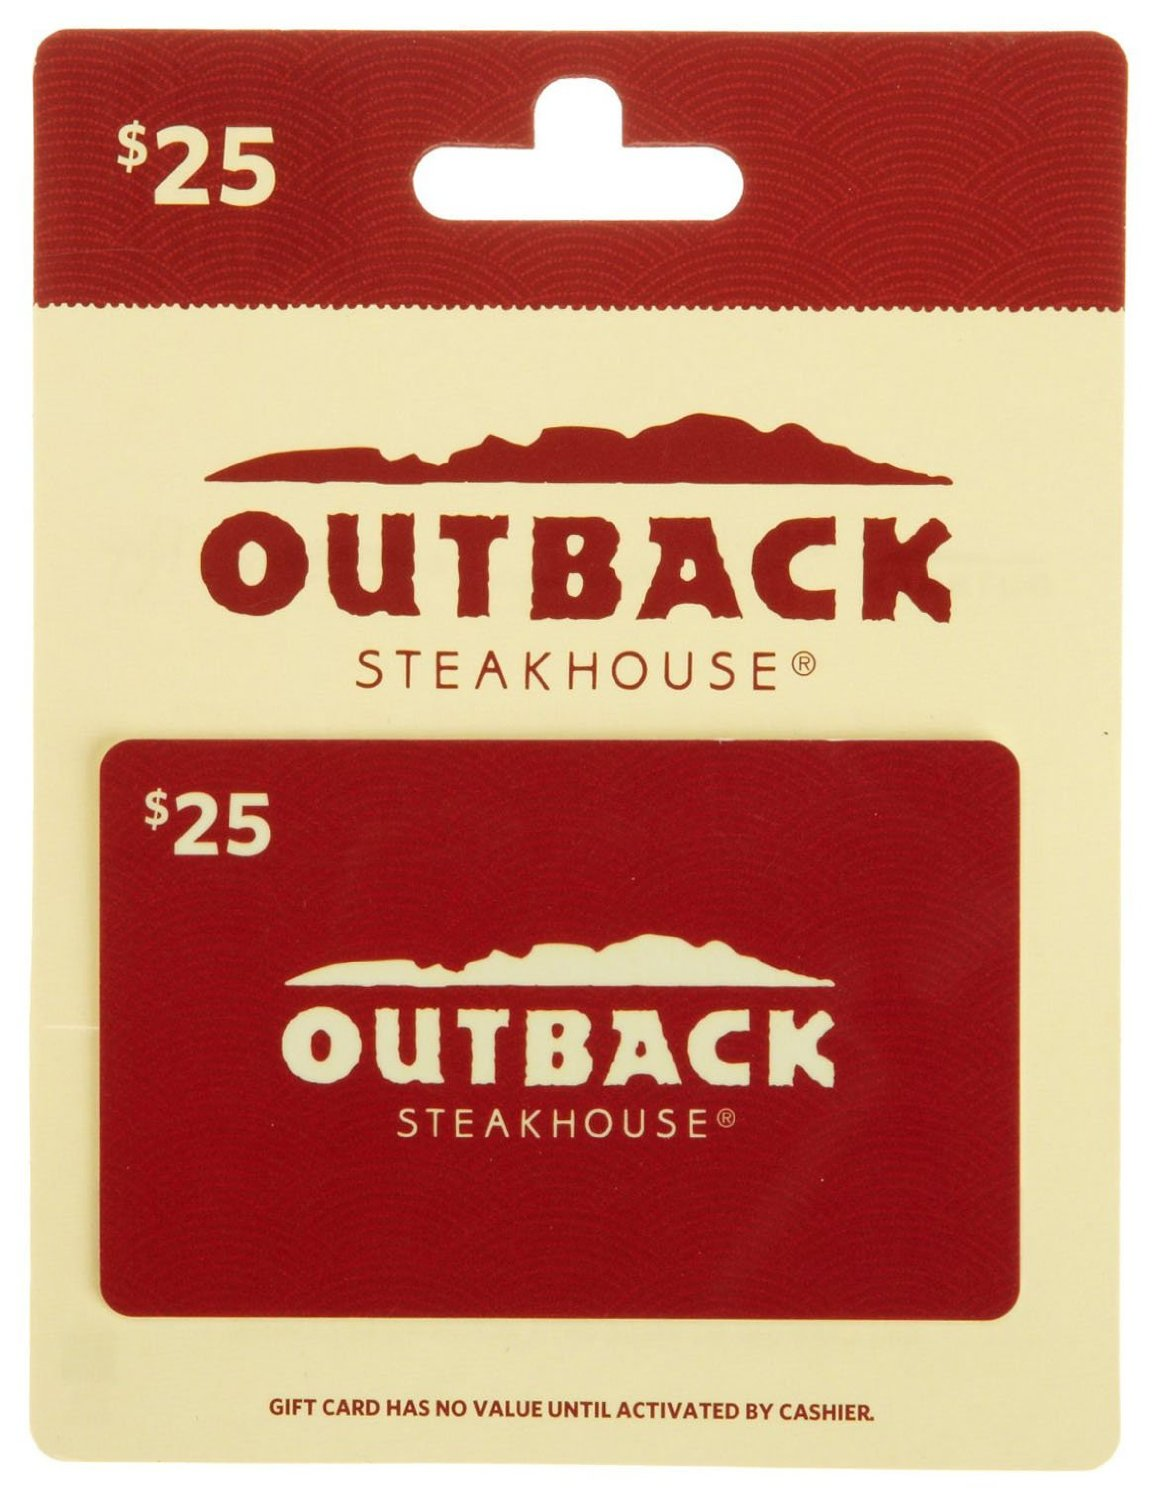 outback-steakhouse-gift-card